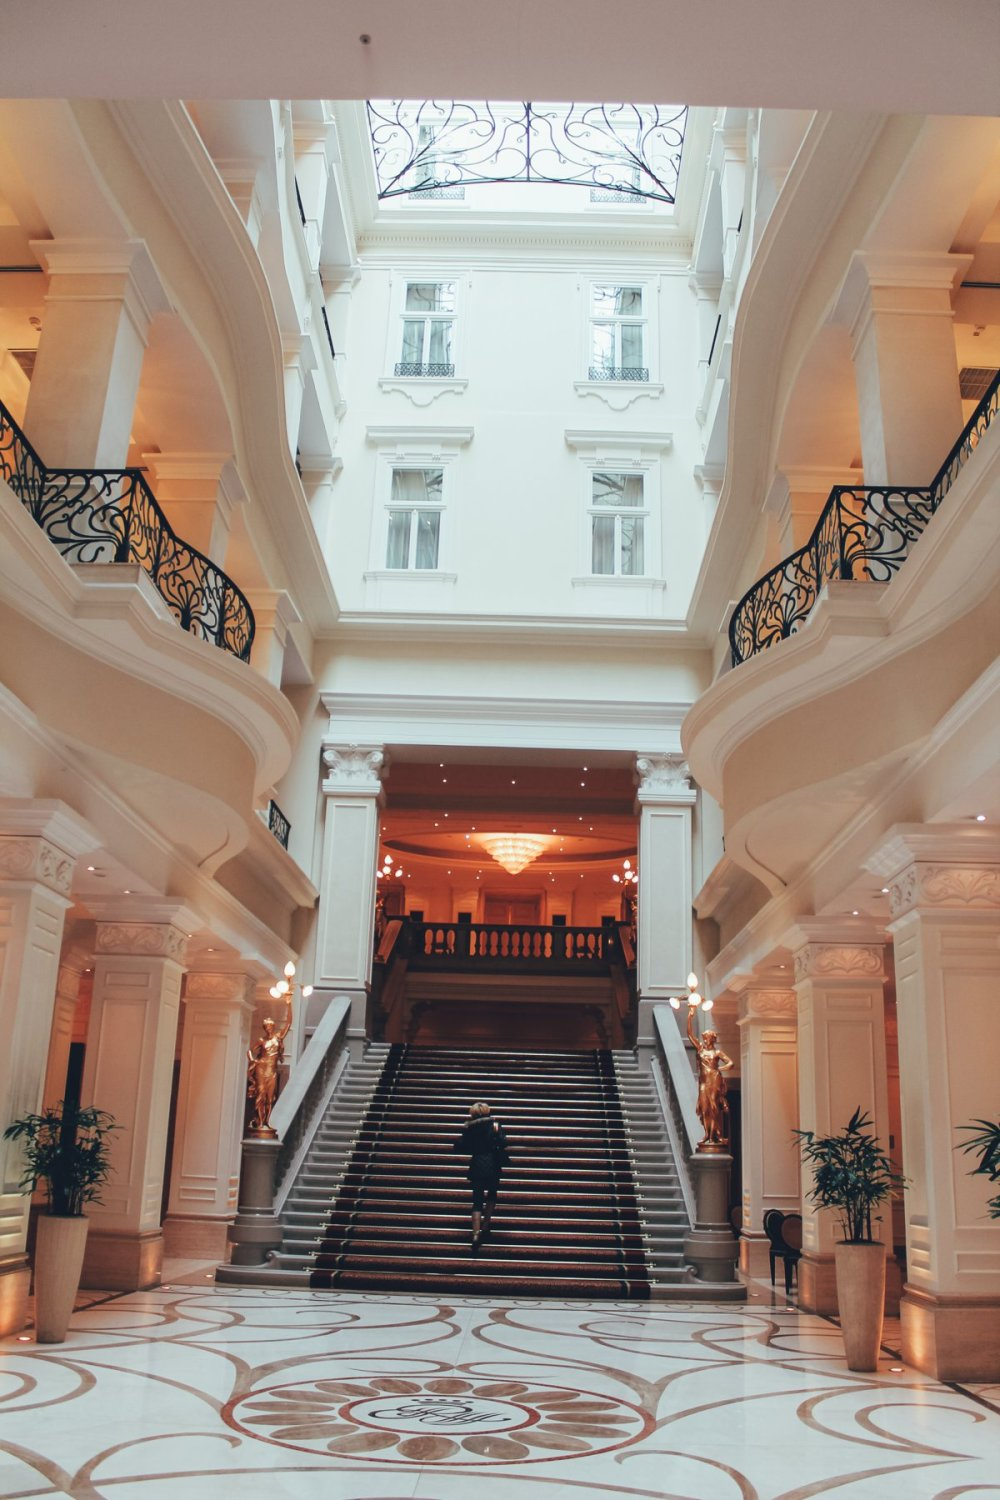 Arrival in Budapest! First stop - The Corinthia Hotel. (1)